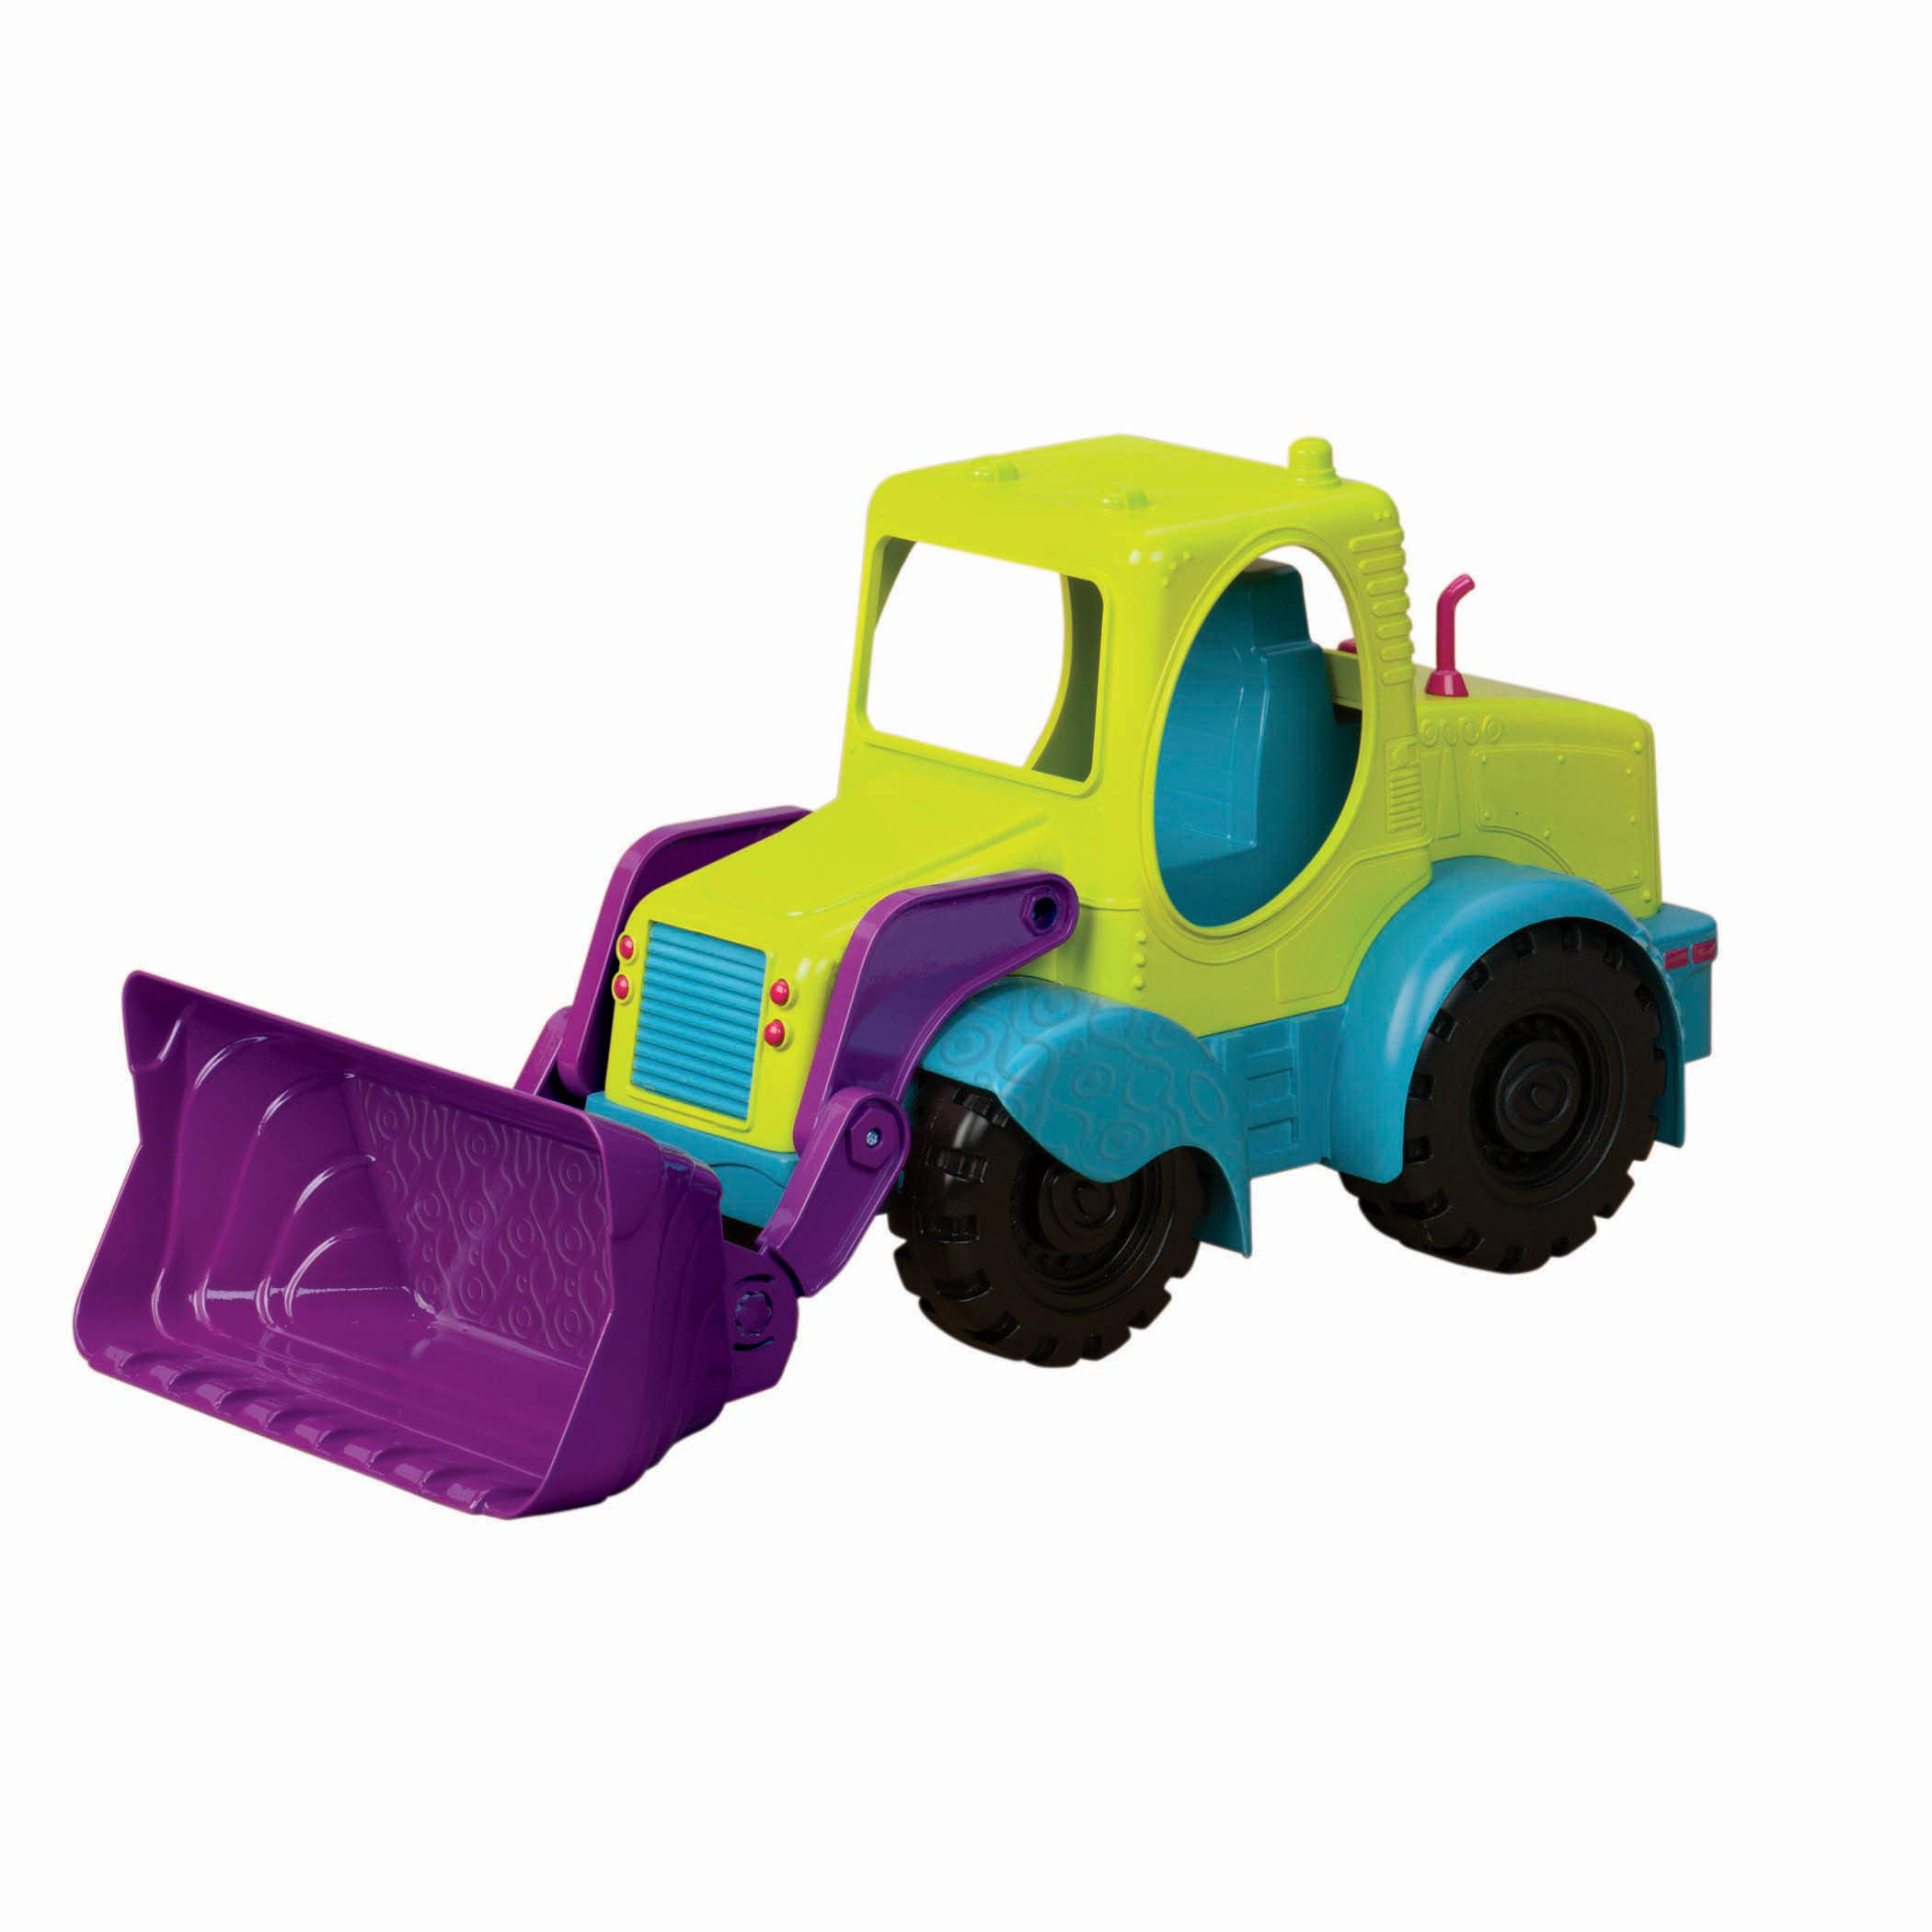 """B. toys by Battat Loadie Loader 18"""" Sand Truck – Excavator Toy Truck for Toddlers 18 M+, BX1416Z"""